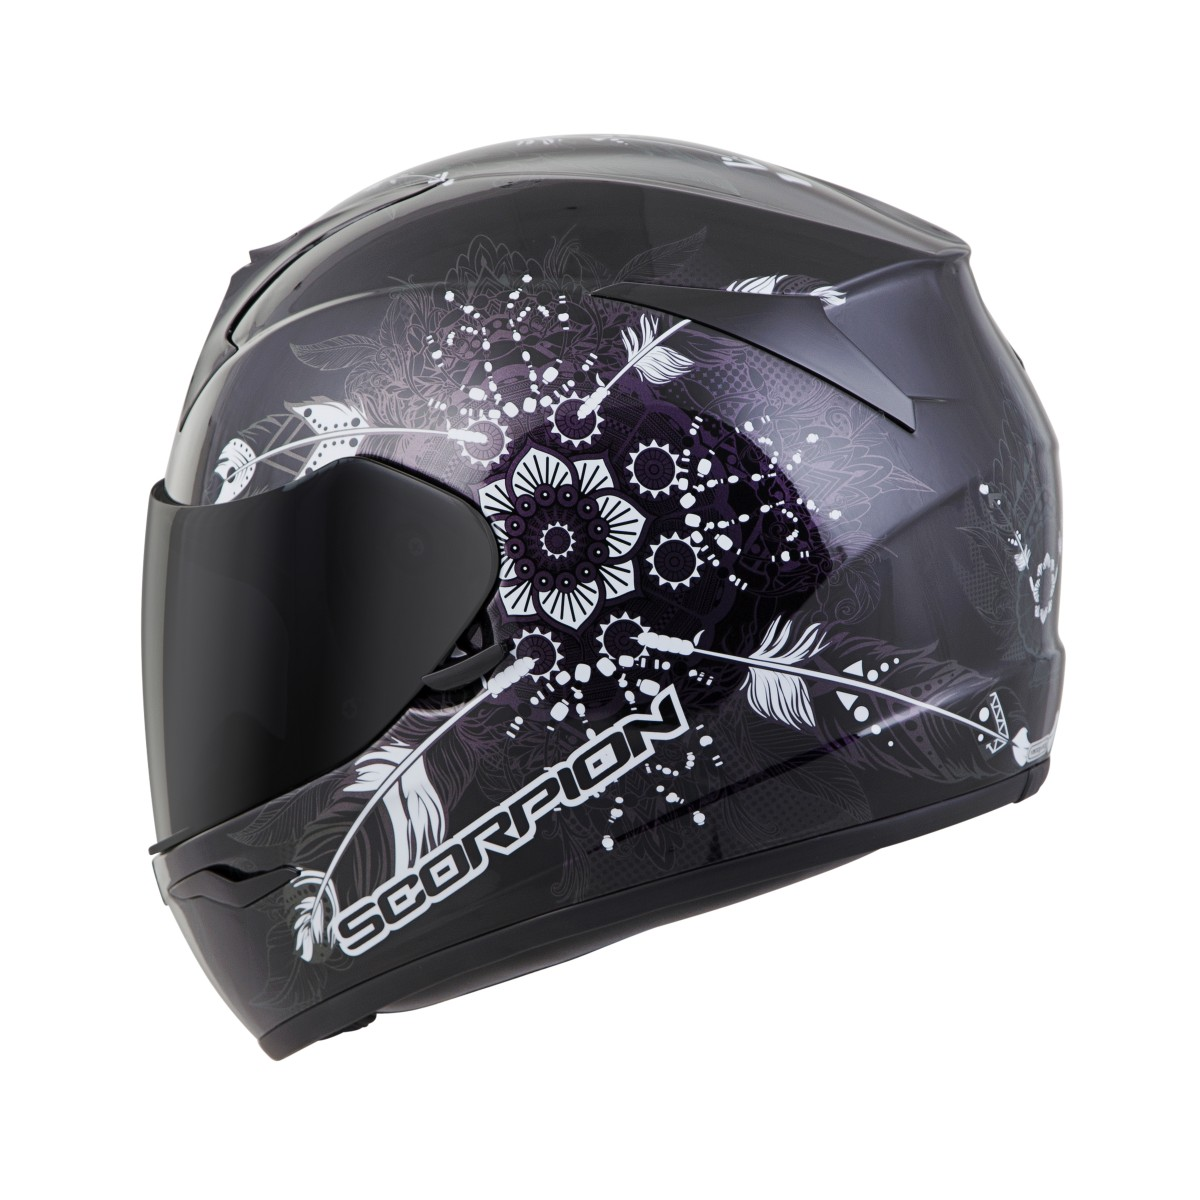 Scorpion EXO-R320 Dream Helmet